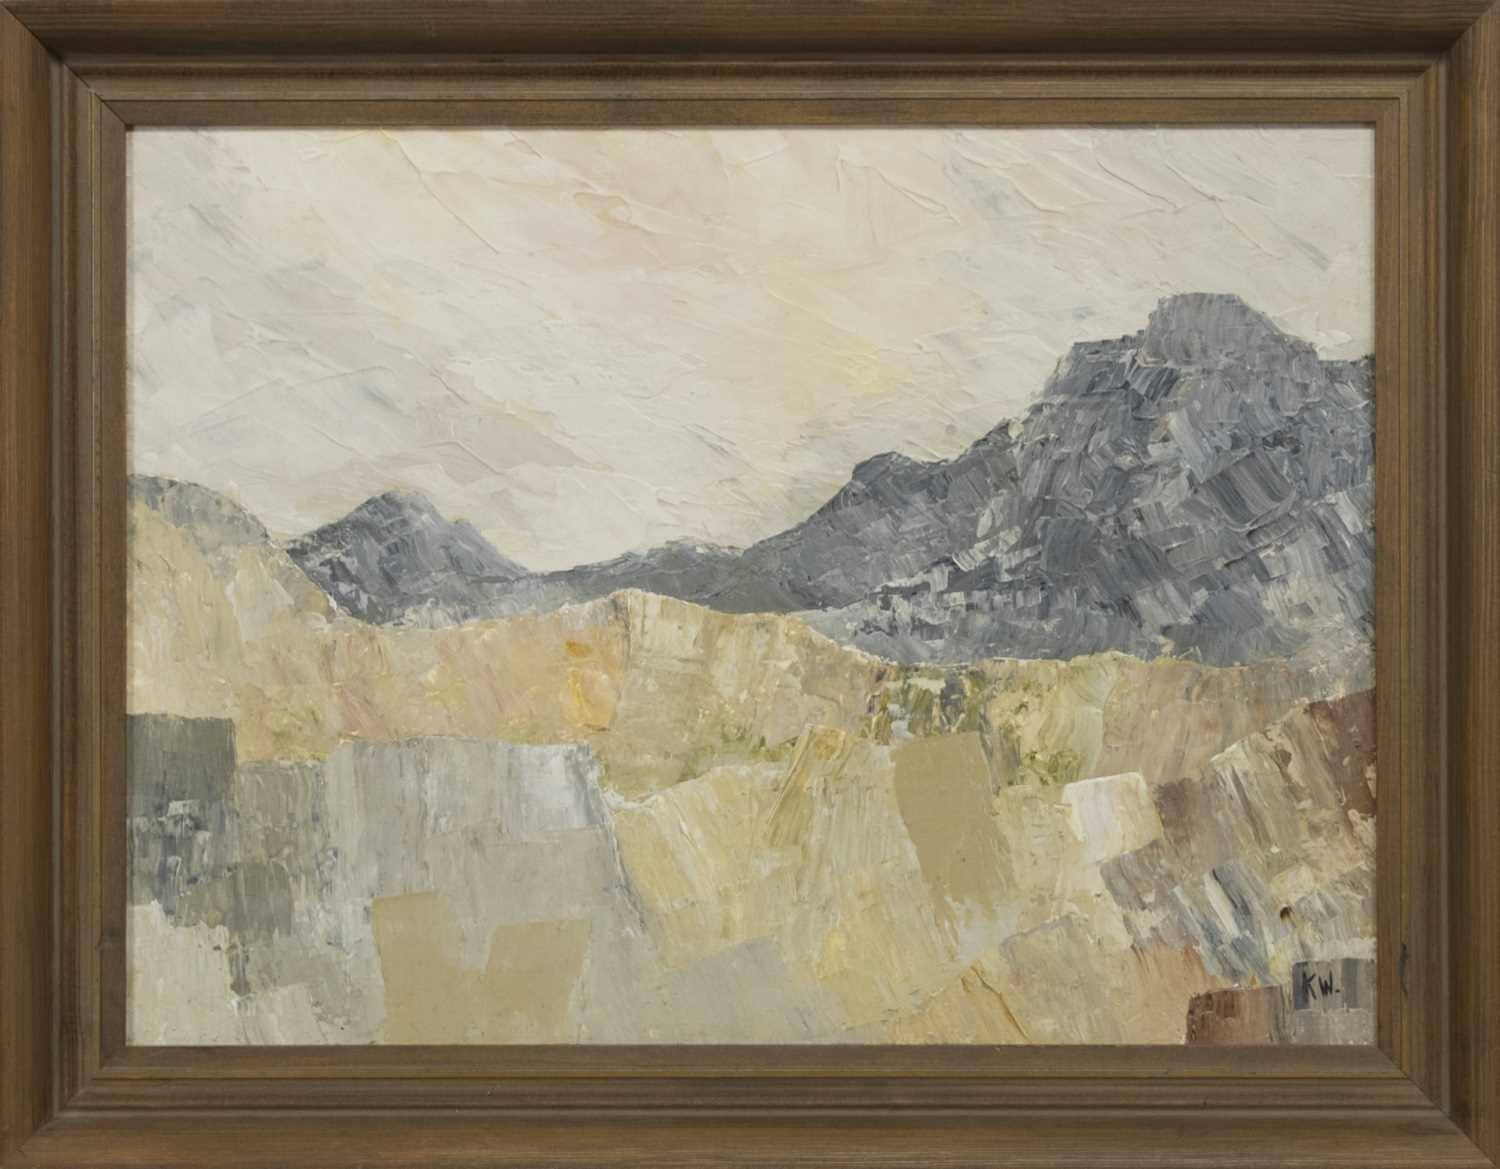 Lot 18 - DISUSED QUARRY, NANTLLE, AN OIL ATTRIBUTED TO KYFFIN WILLIAMS